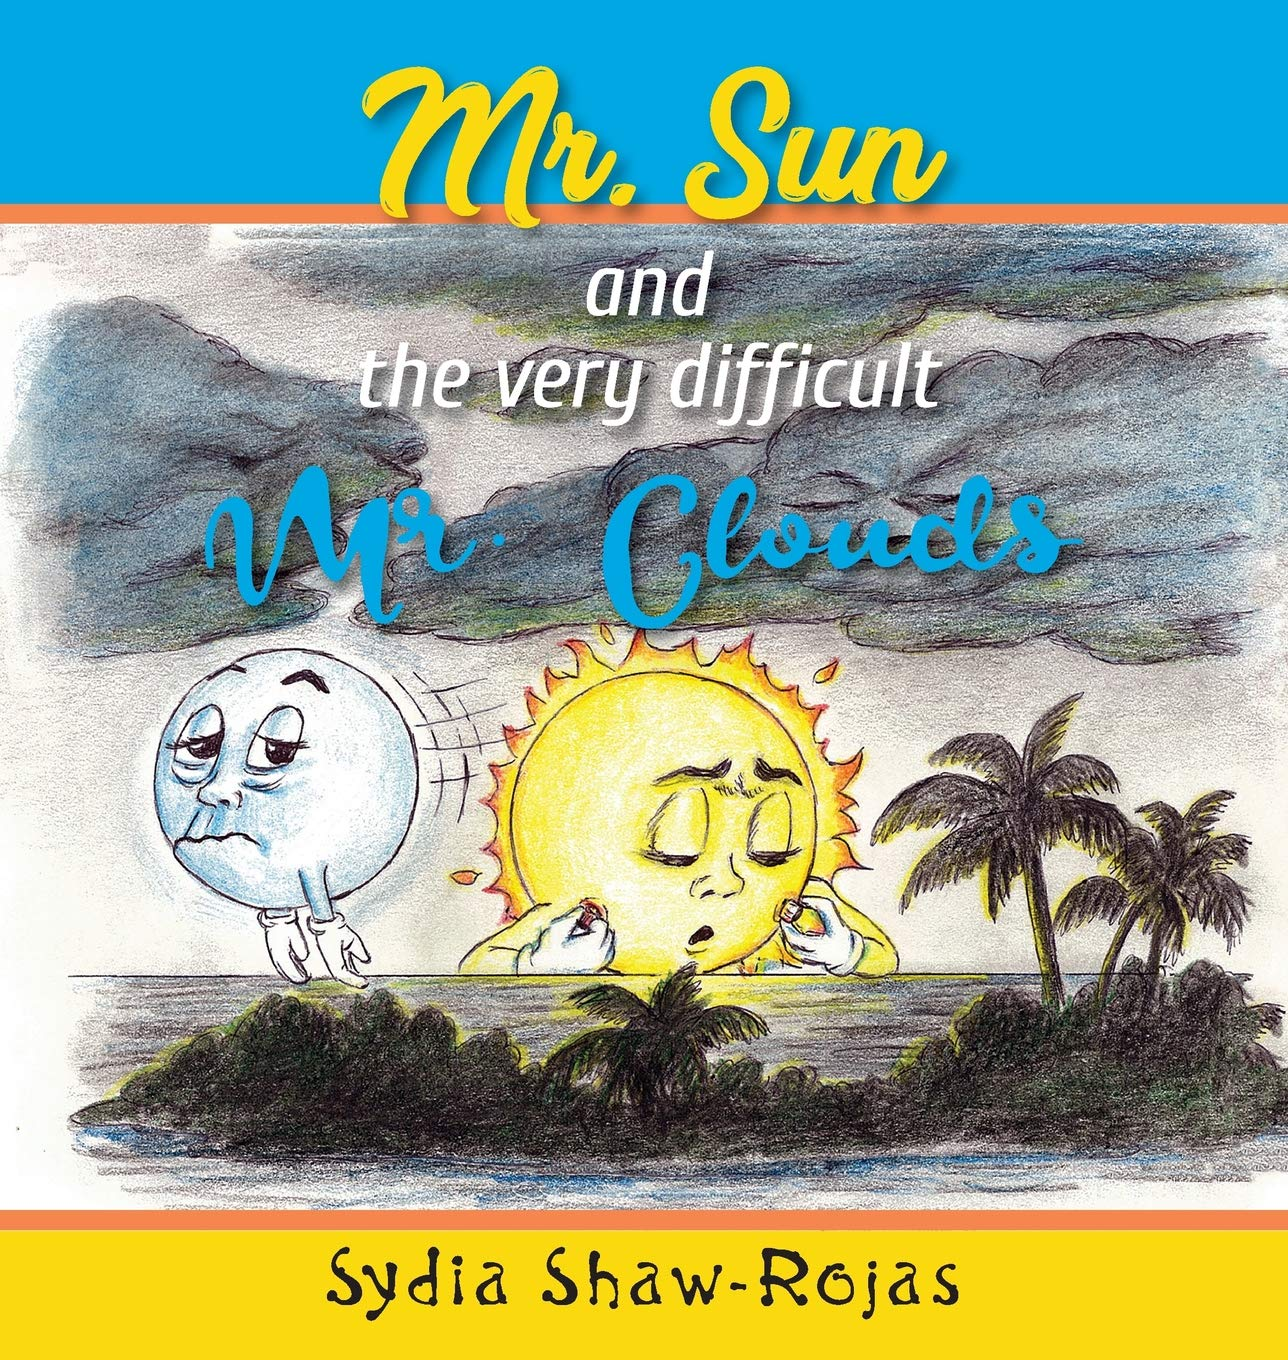 Mr. Sun and the Very Difficult Mr. Clouds